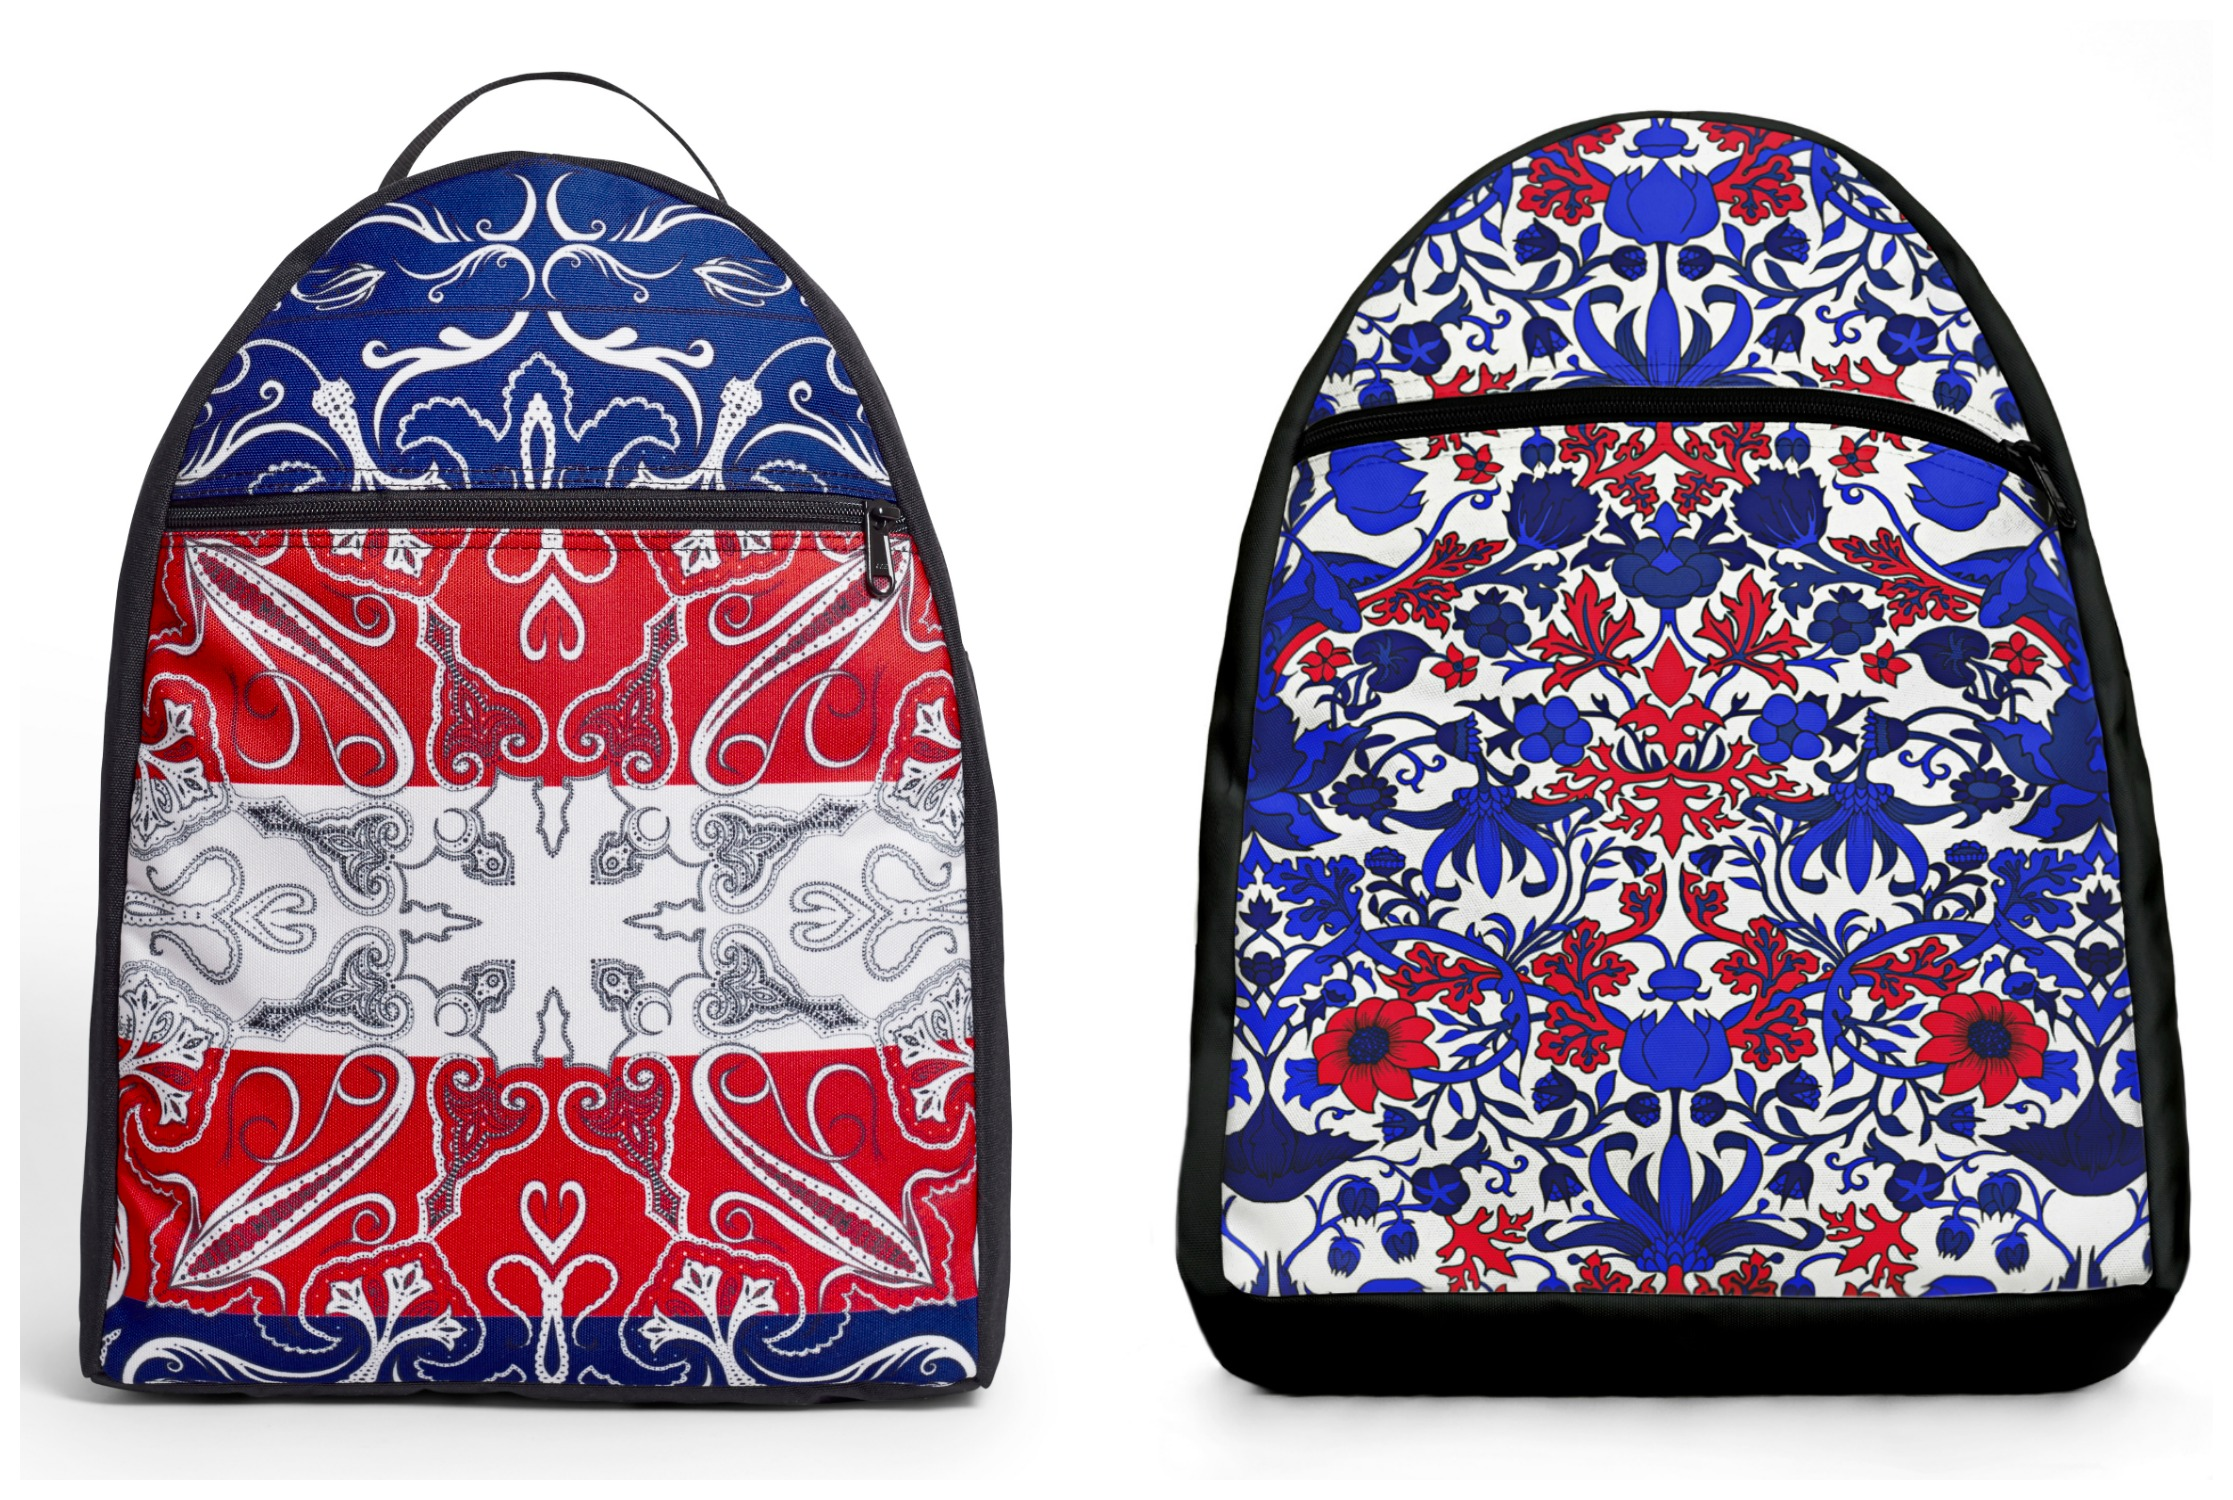 Rachel Zoe Americana backpacks at eBay